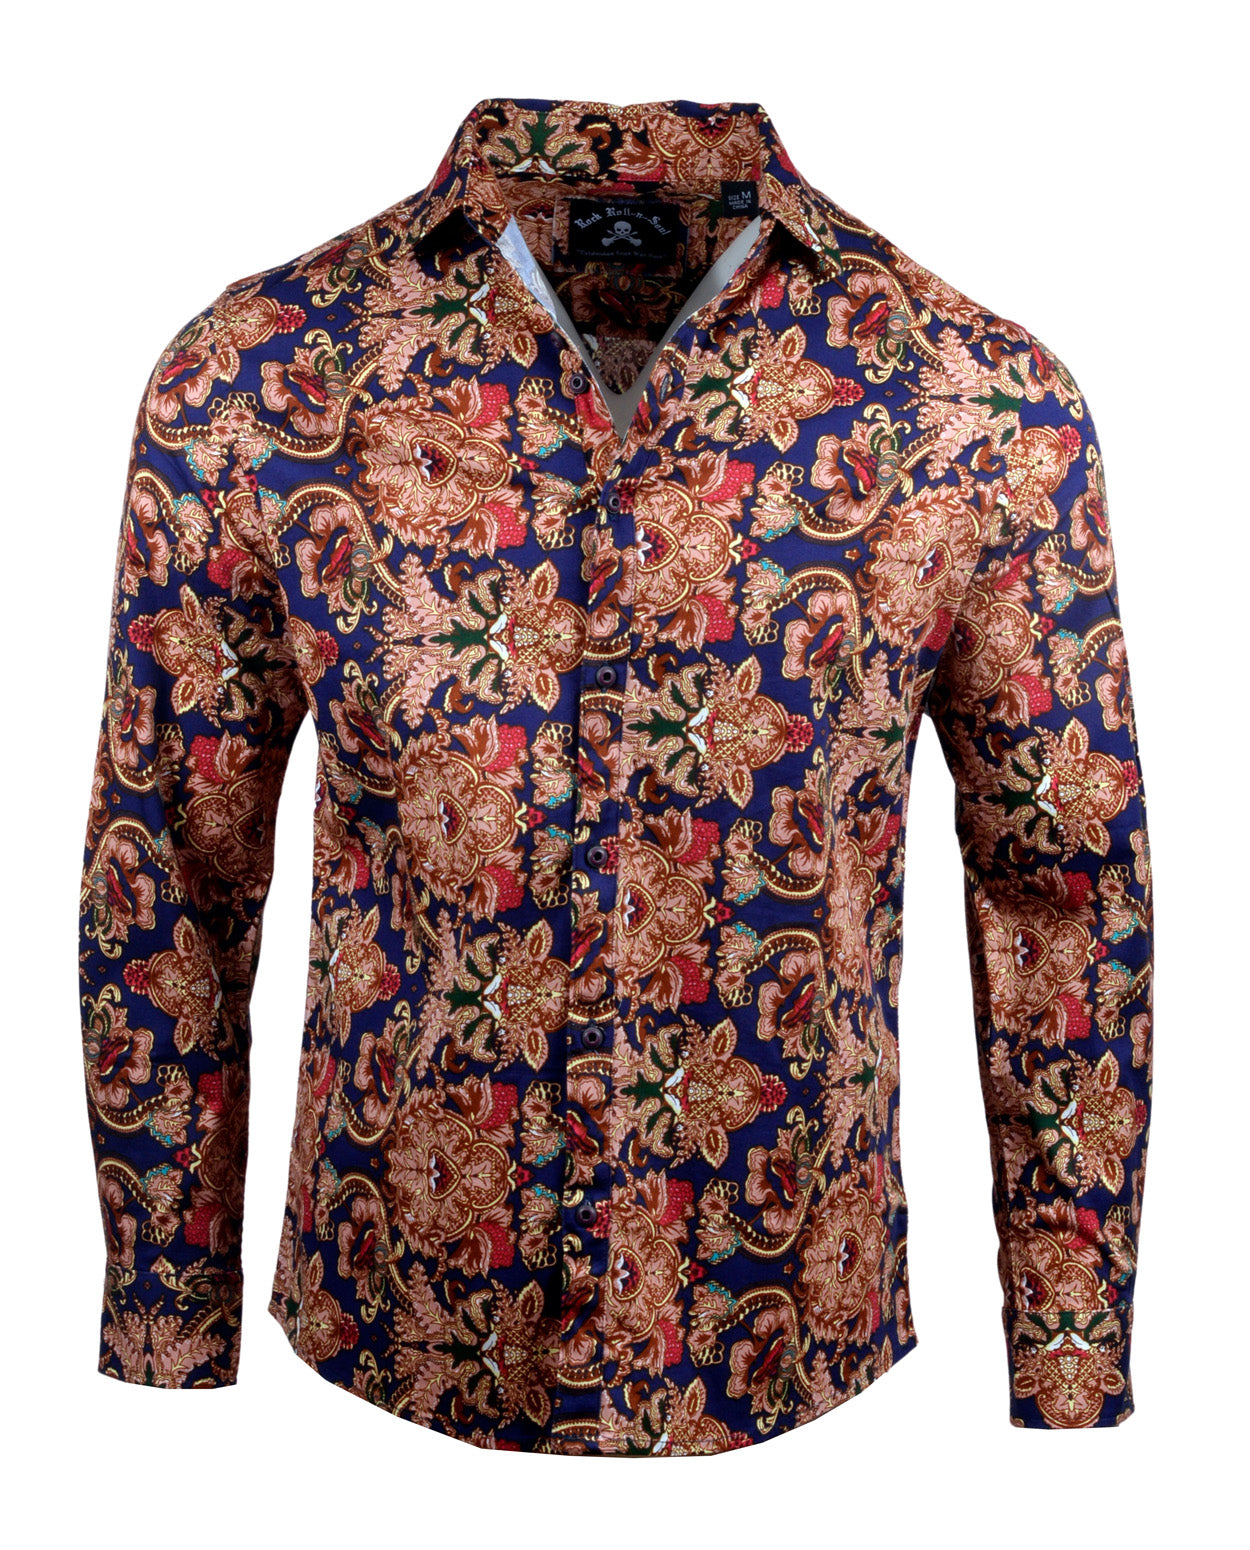 Men's Casual Fashion Button Up Shirt - Fly Away by Rock Roll n Soul